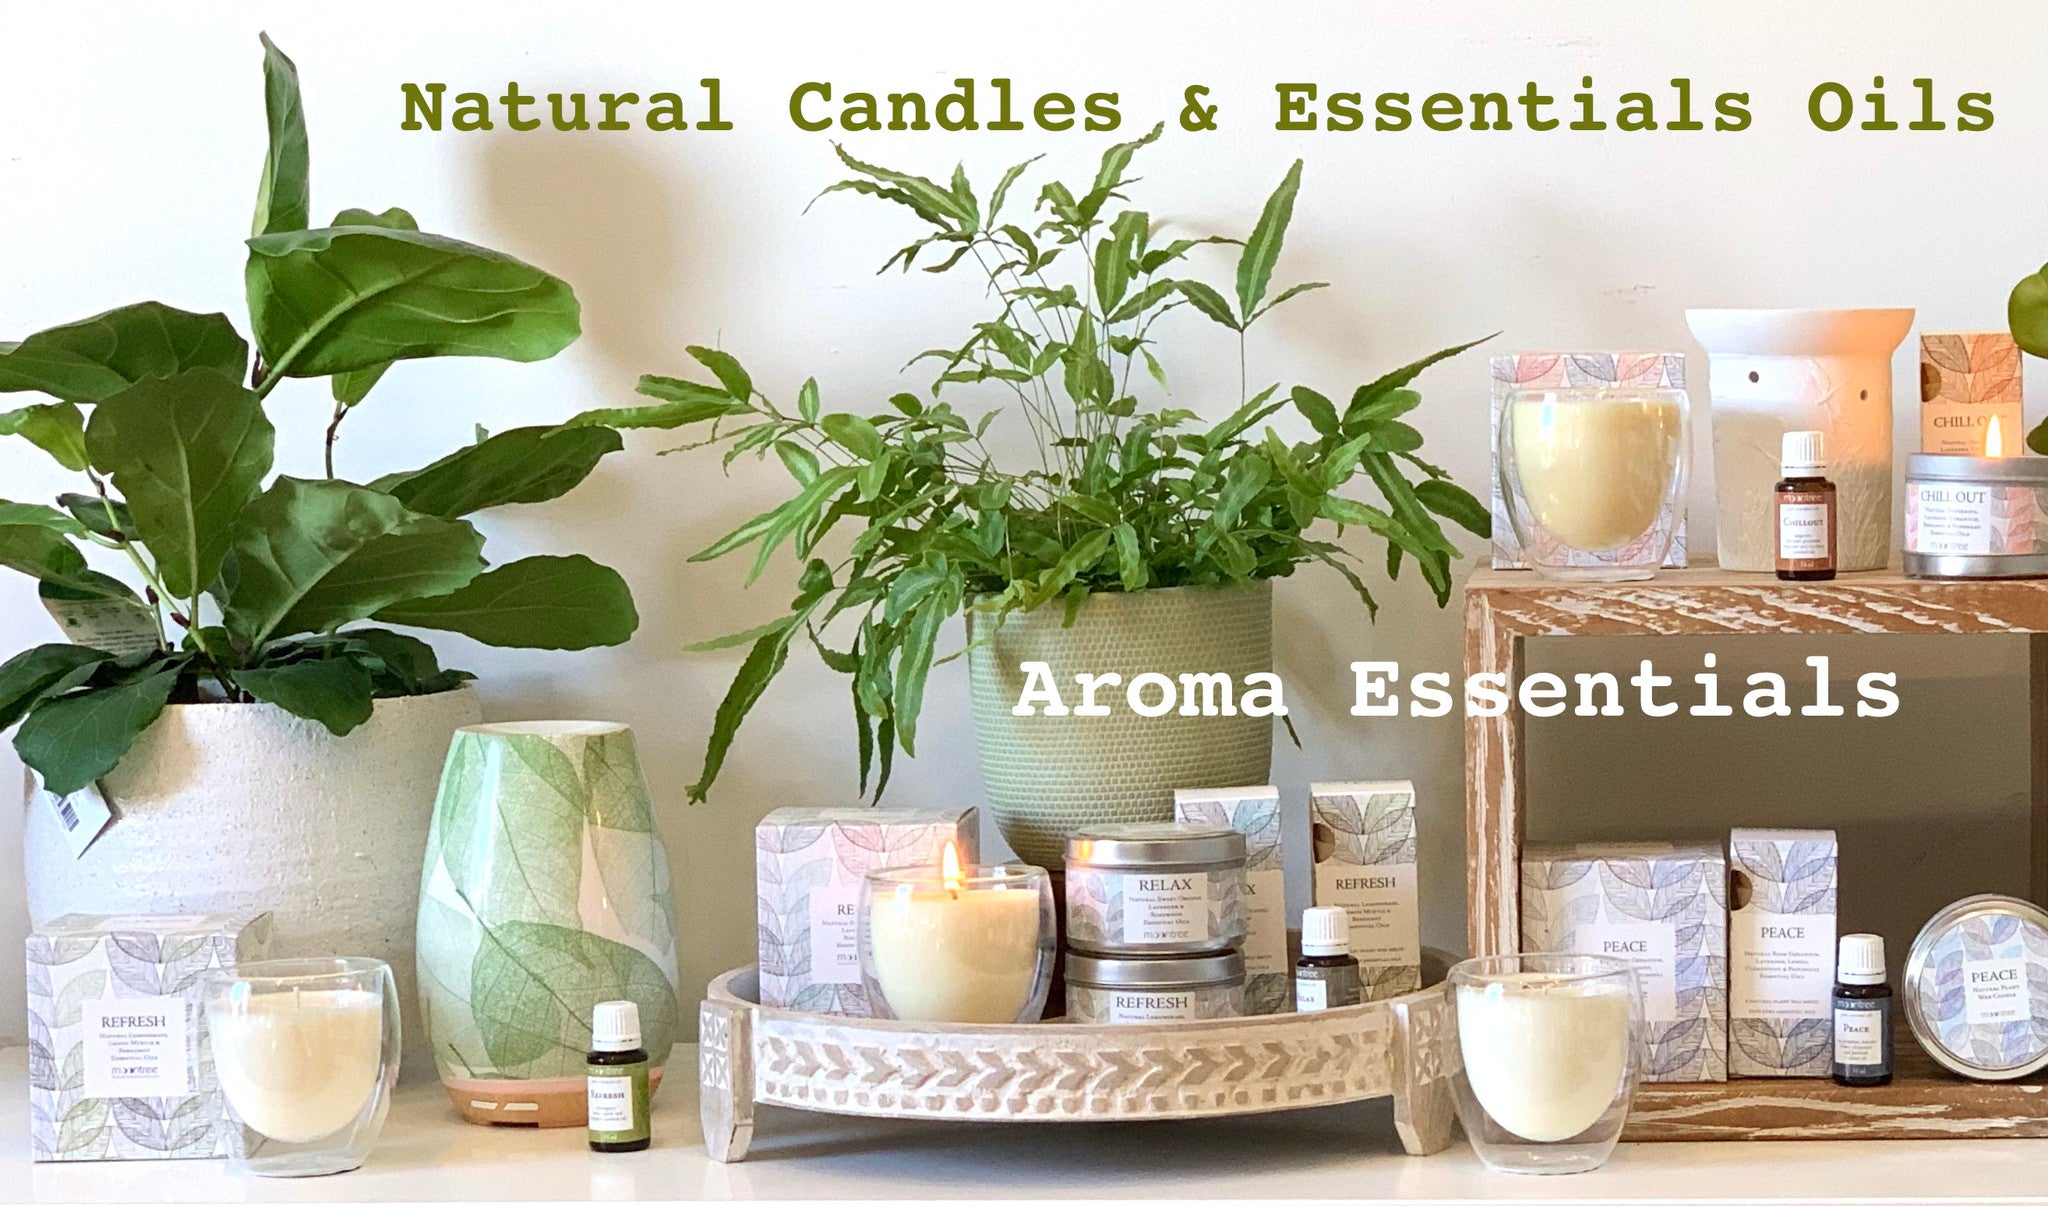 Moontree Essentials Candles and Melts